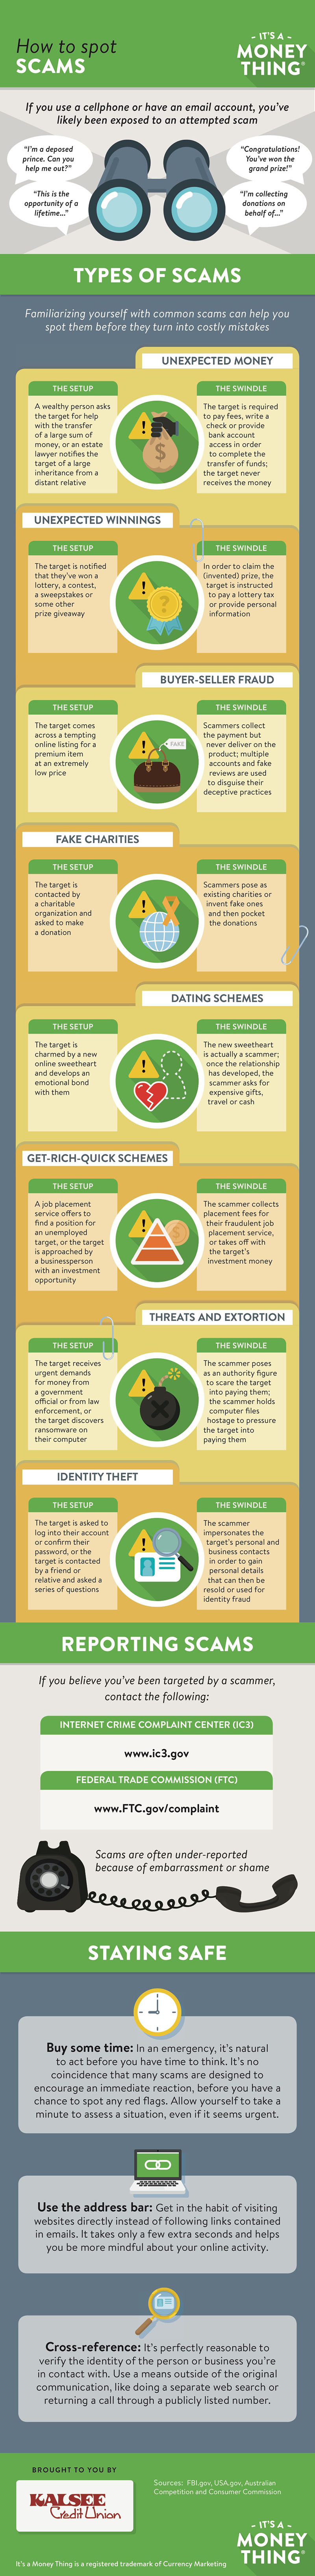 how to spot a scam infographic, click for transcription